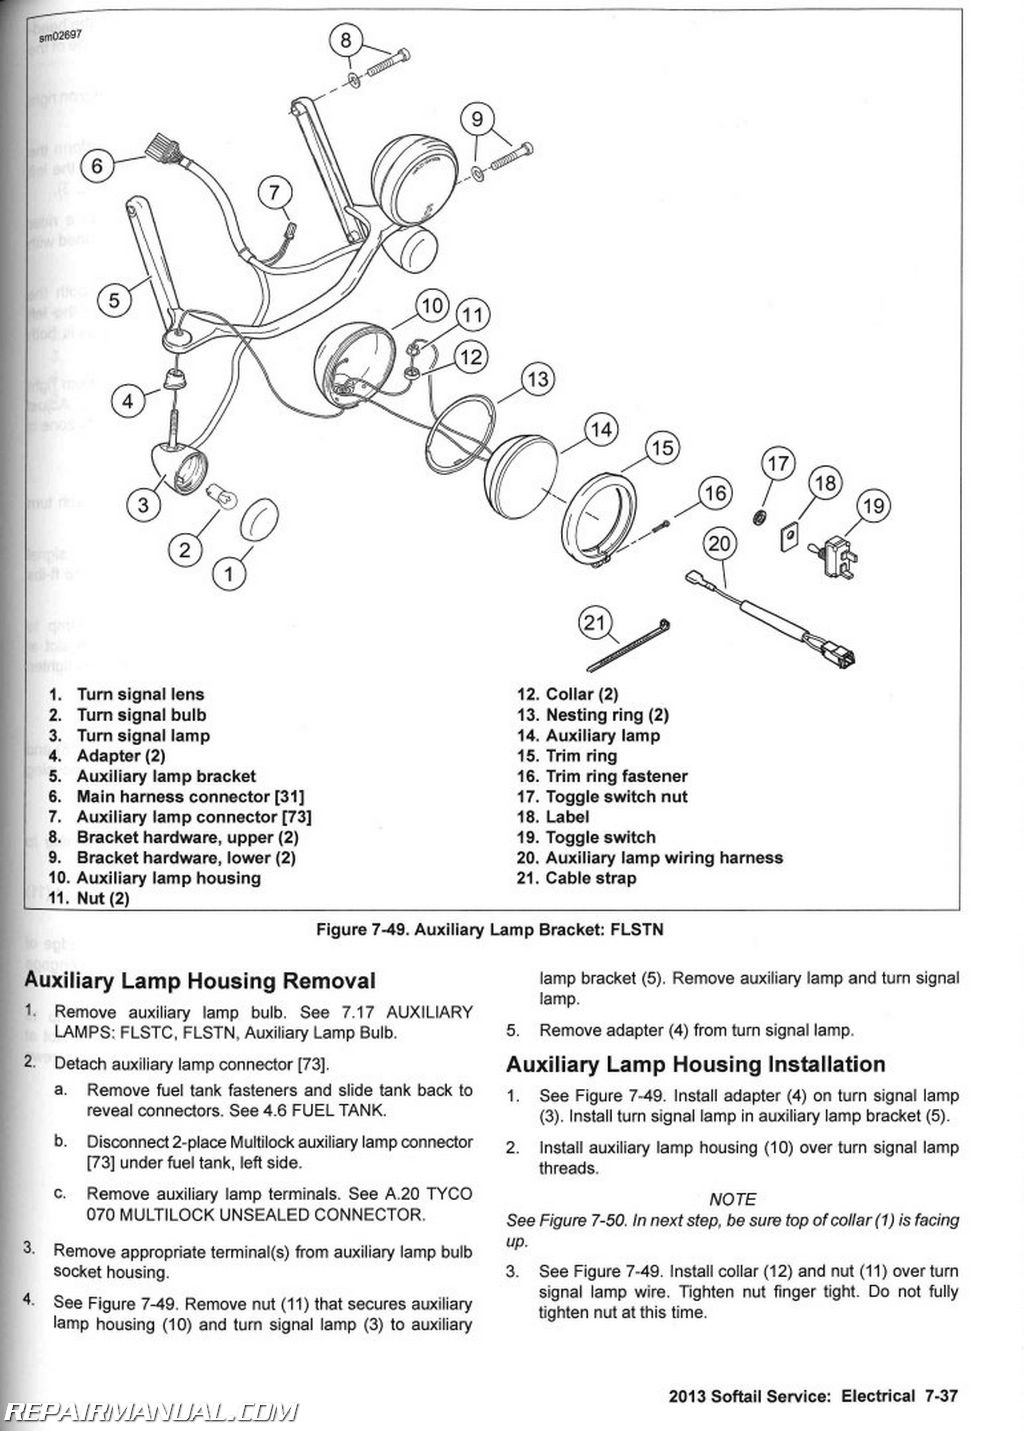 2013 Harley Davidson Softail Motorcycle Service Manual Turn Signal Wiring Diagram On Lights